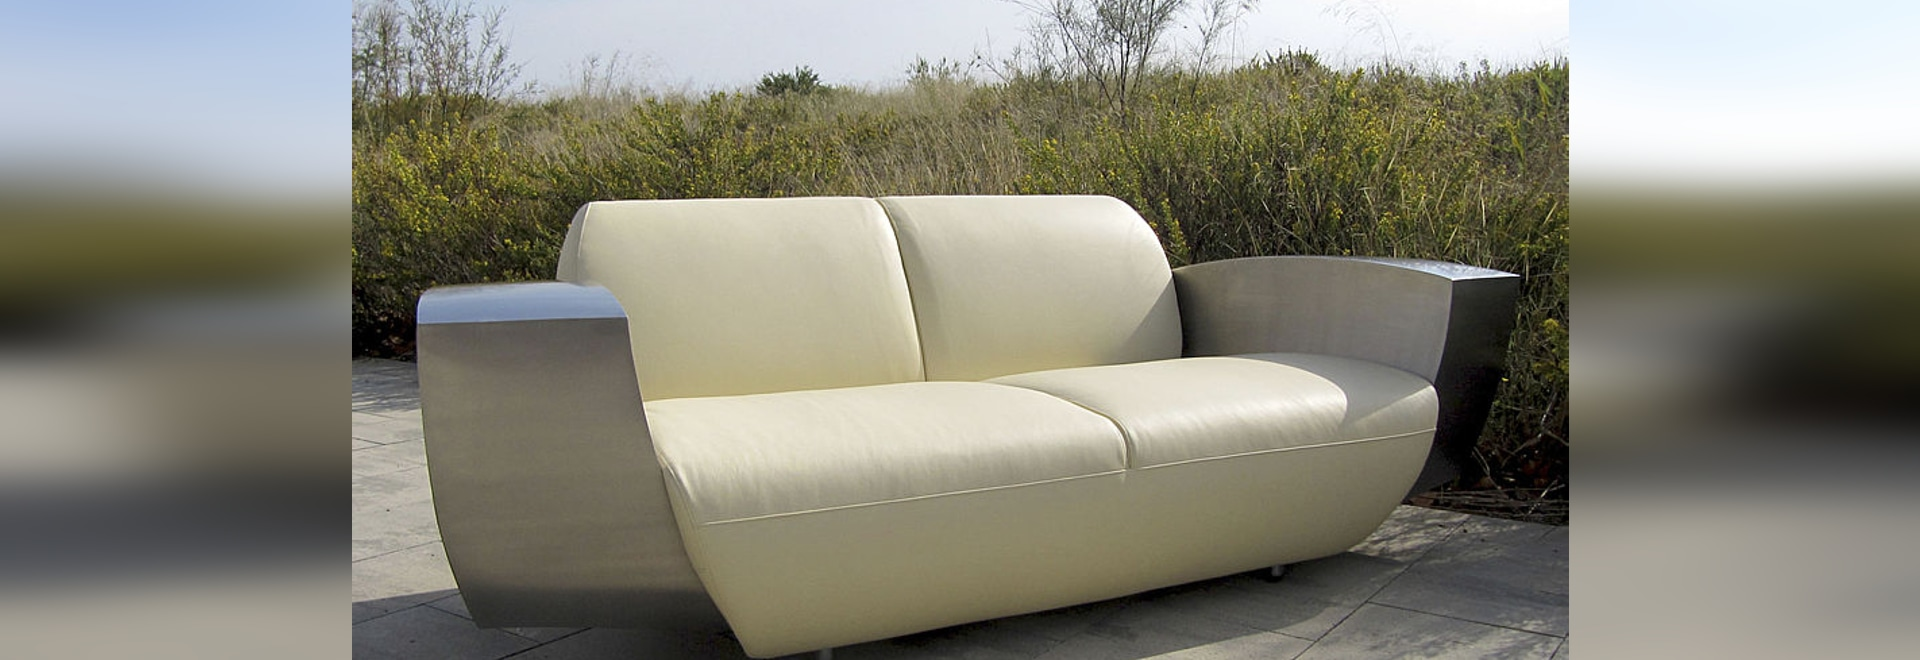 EASY ONE XL , deep seated sofa by ICI ET LÀ